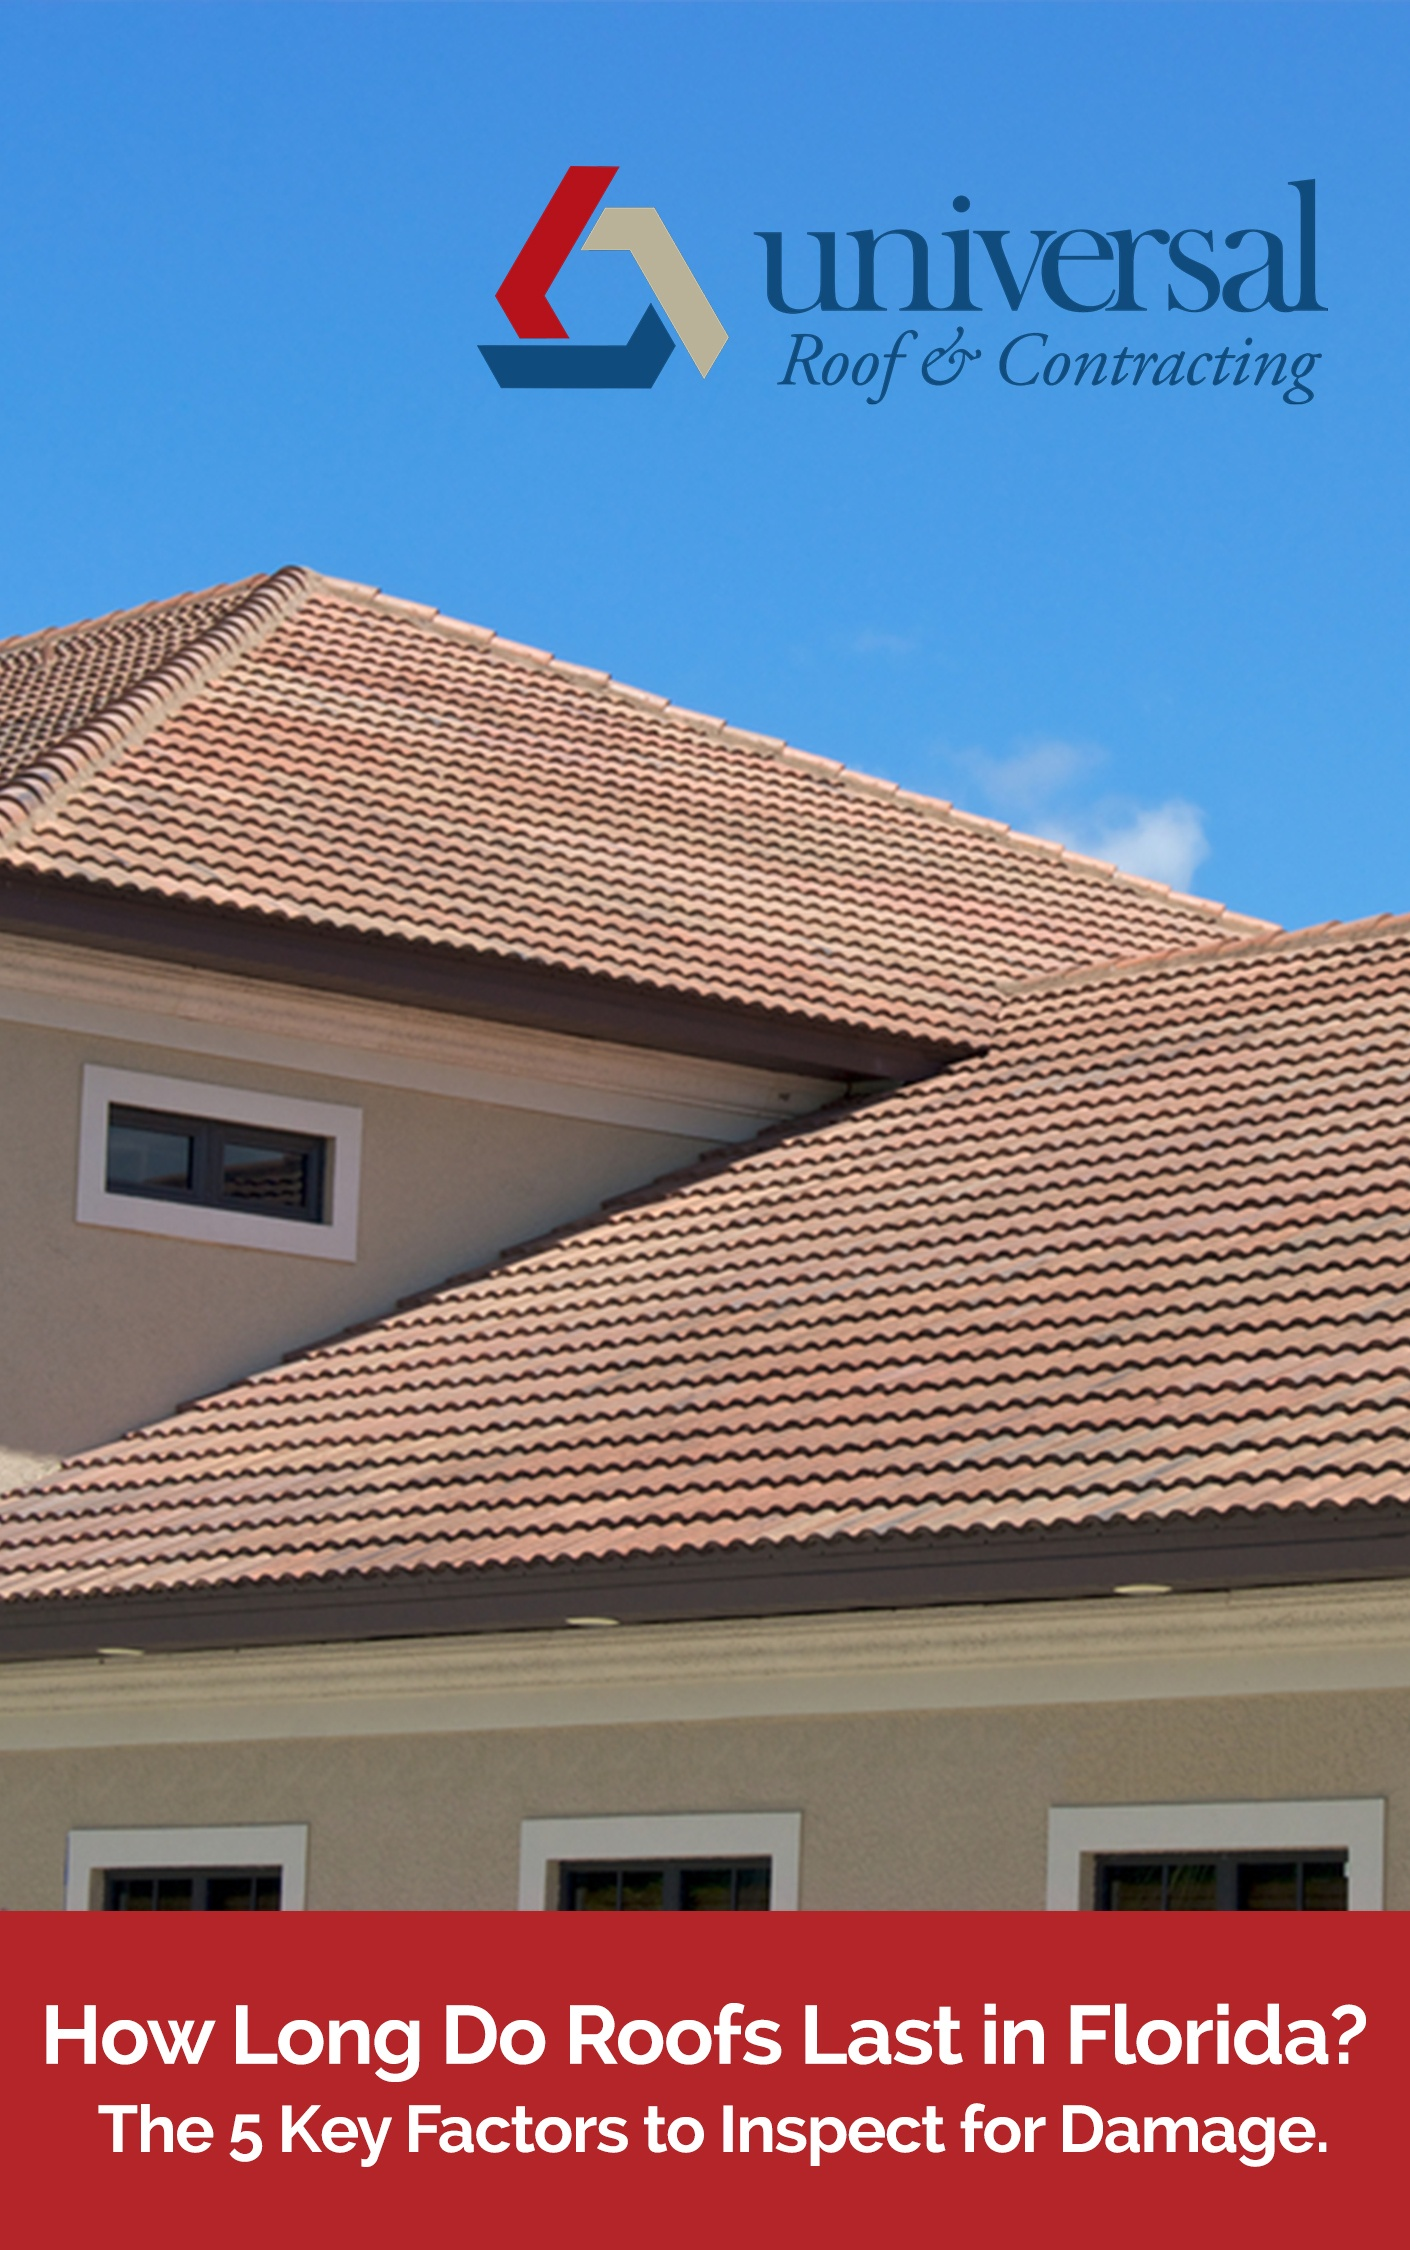 Universal Roofing How Long Do Roofs Last Florida.jpg